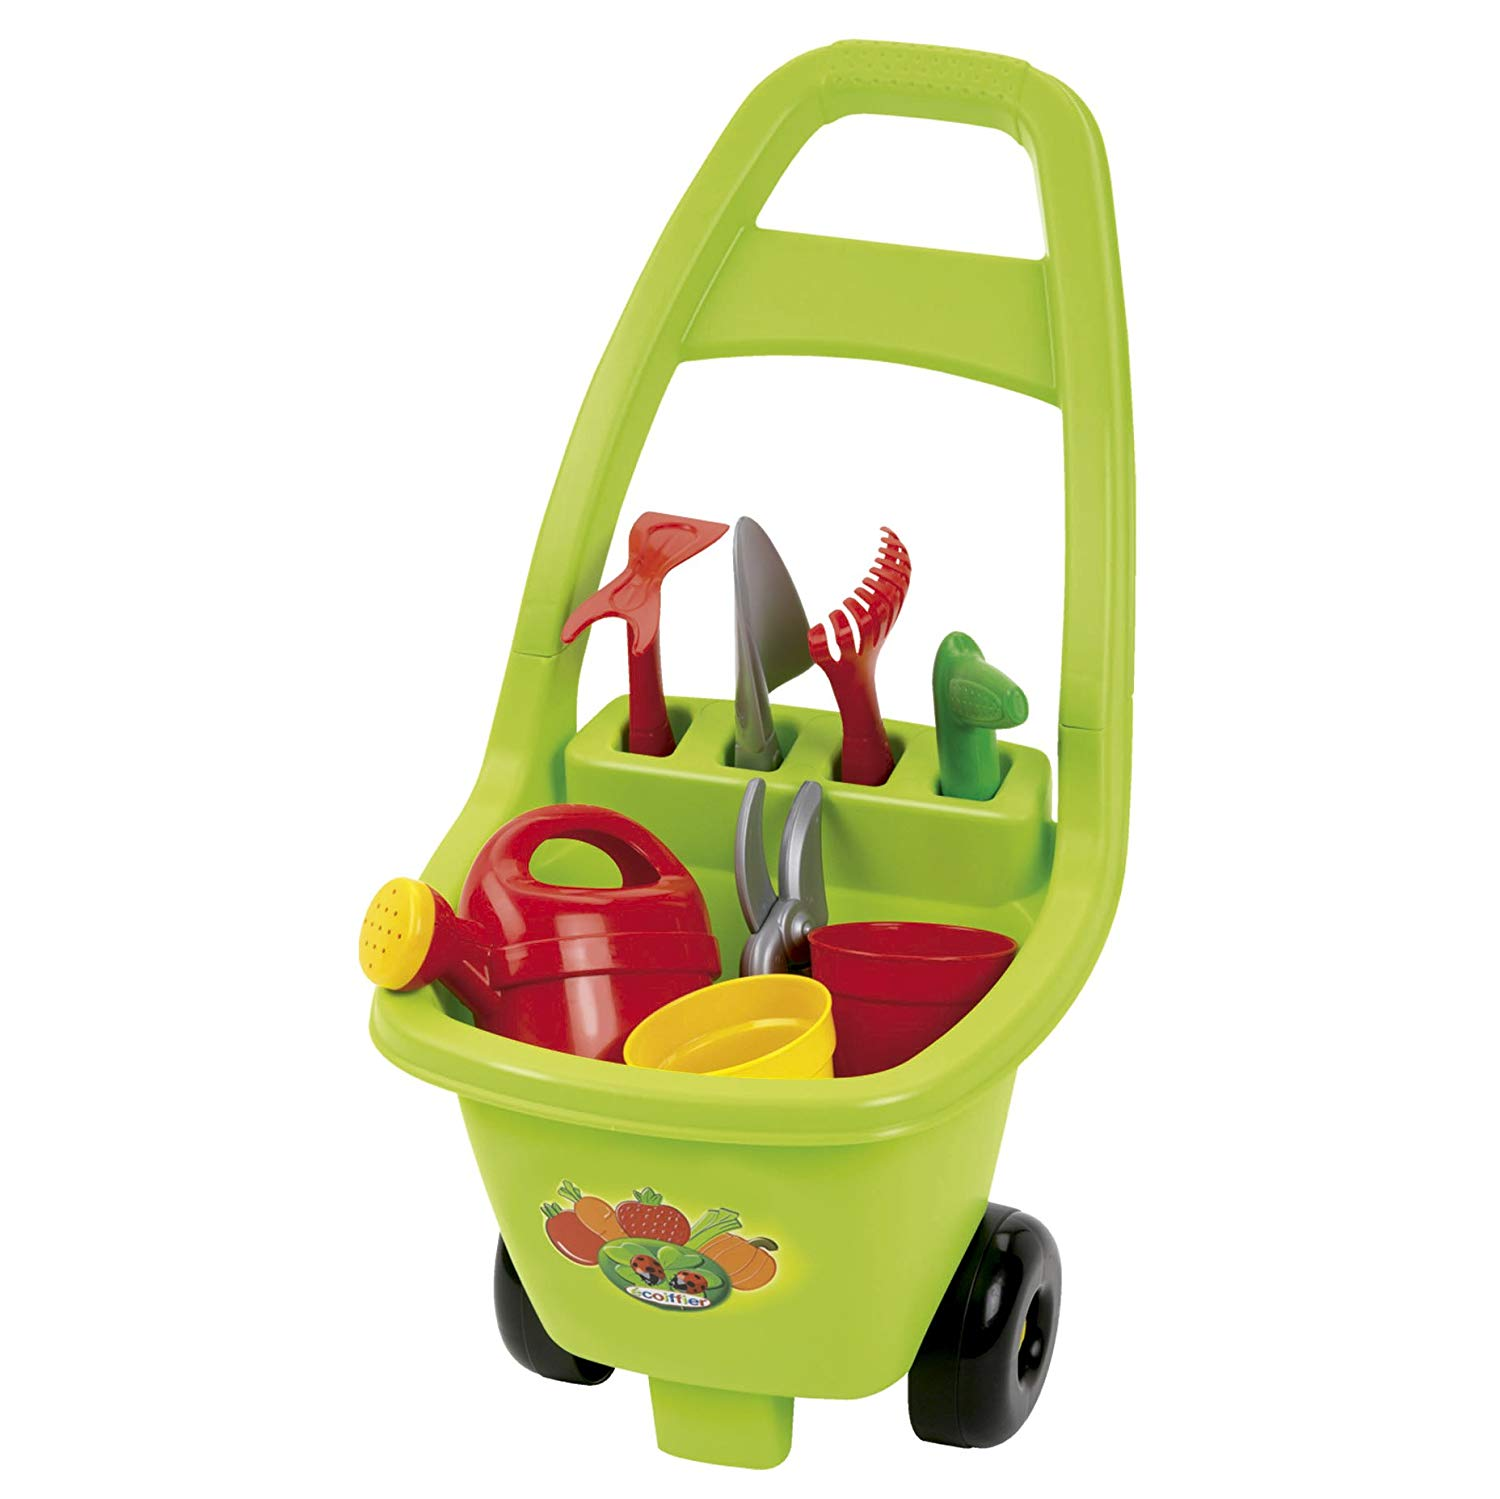 Écoiffier E 04791 Trolley with Garden Tools